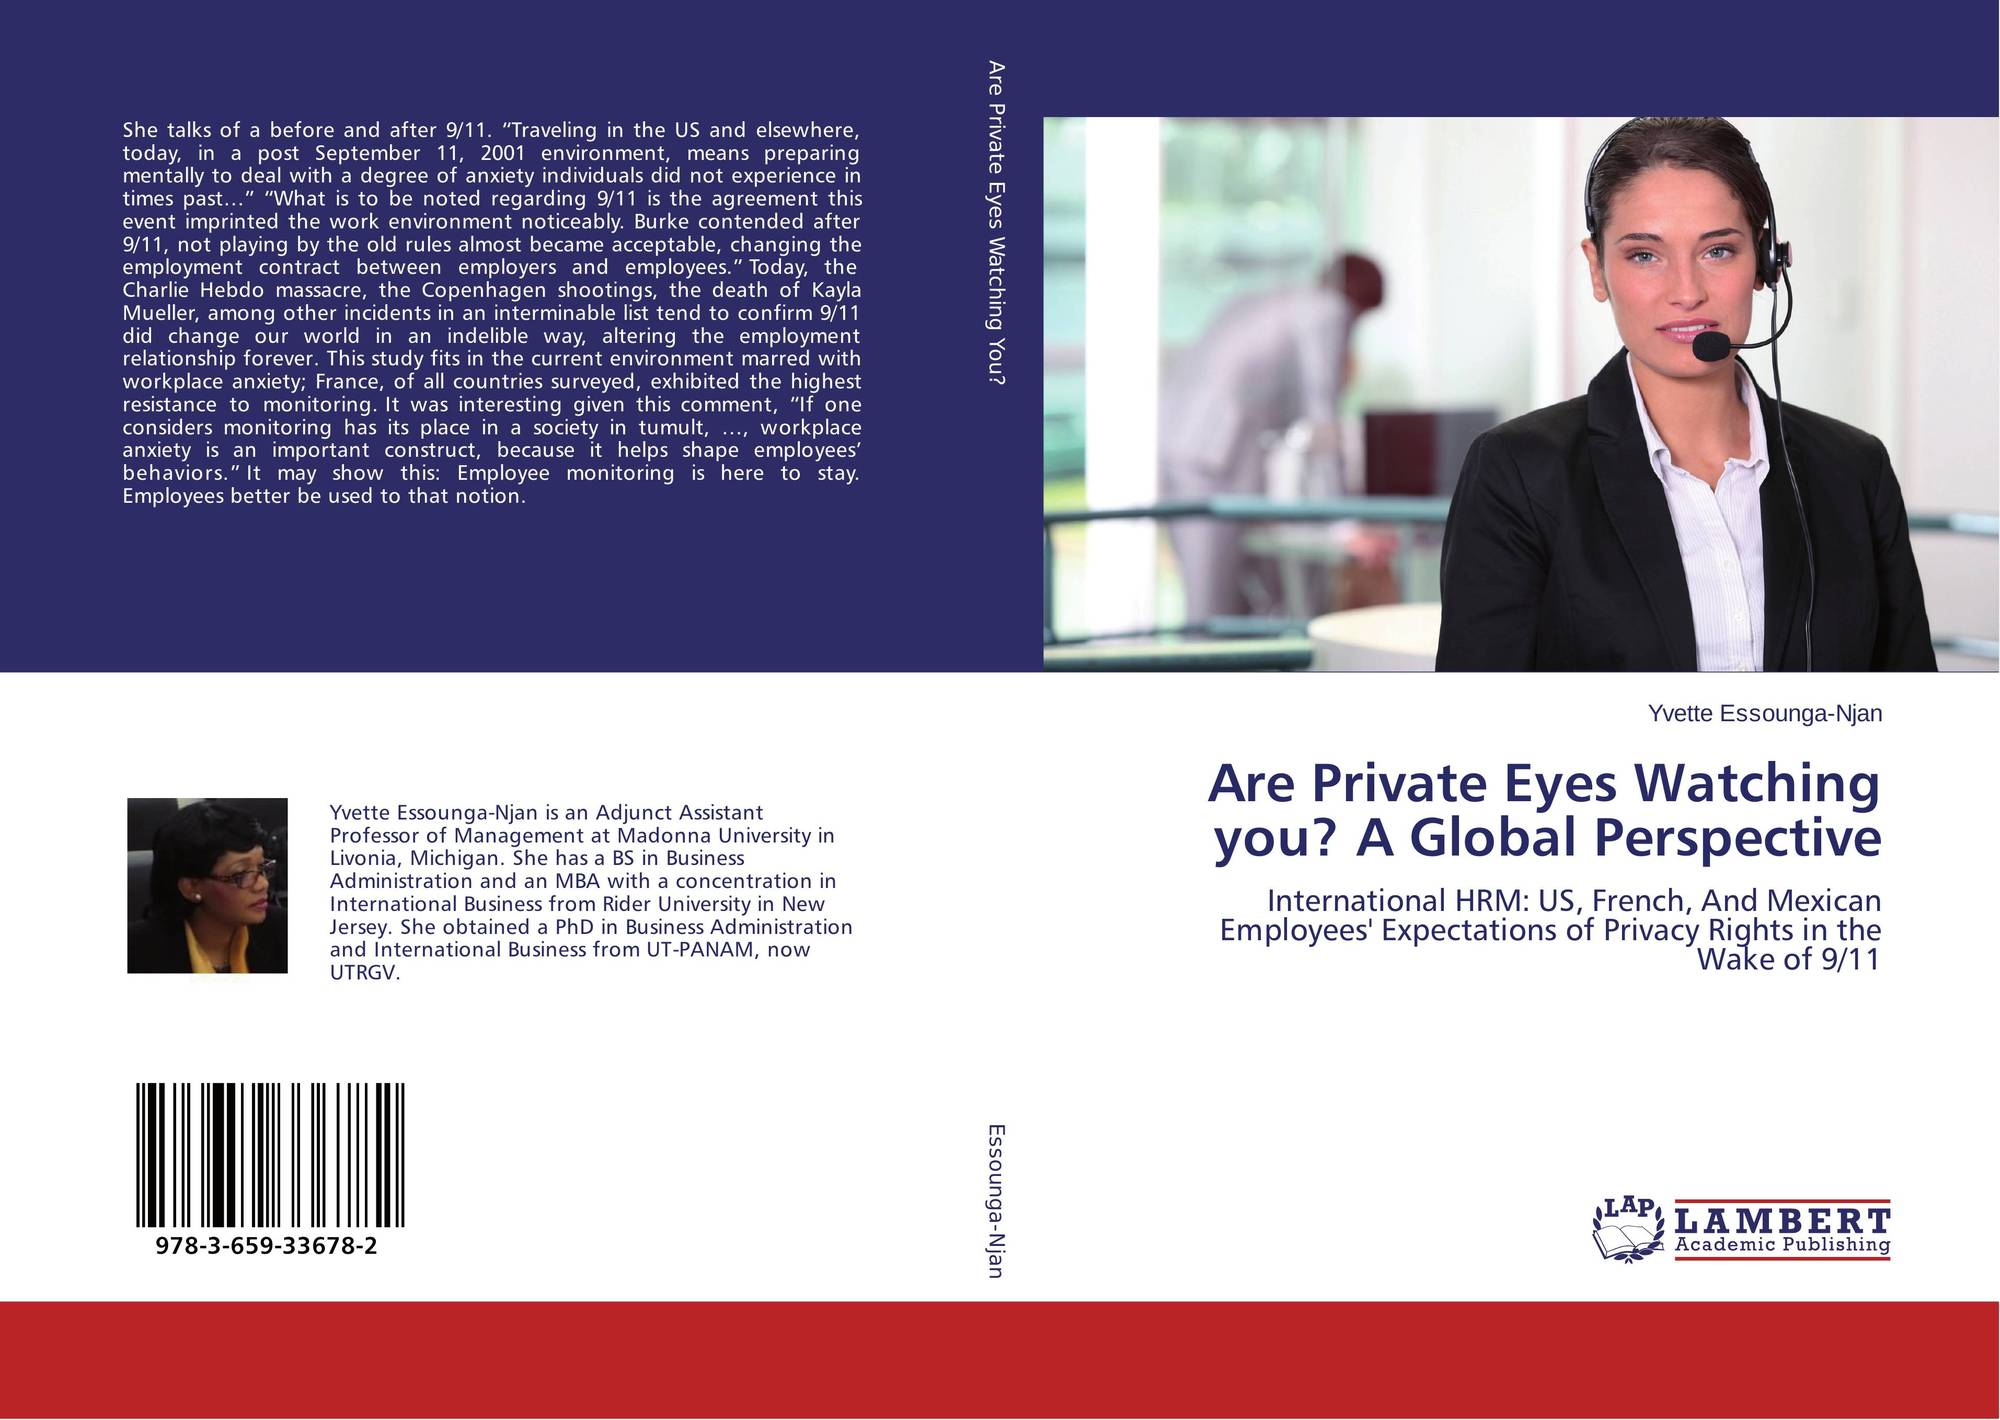 global privacy are you being watched essay Global warming is considered to be one of the most dangerous threats that our culture has ever faced global warming is responsible for catastrophic weather events, water shortages, crop failures, changes in cloud formation patterns, ocean current, sea-level rise, and many other climatic changes.